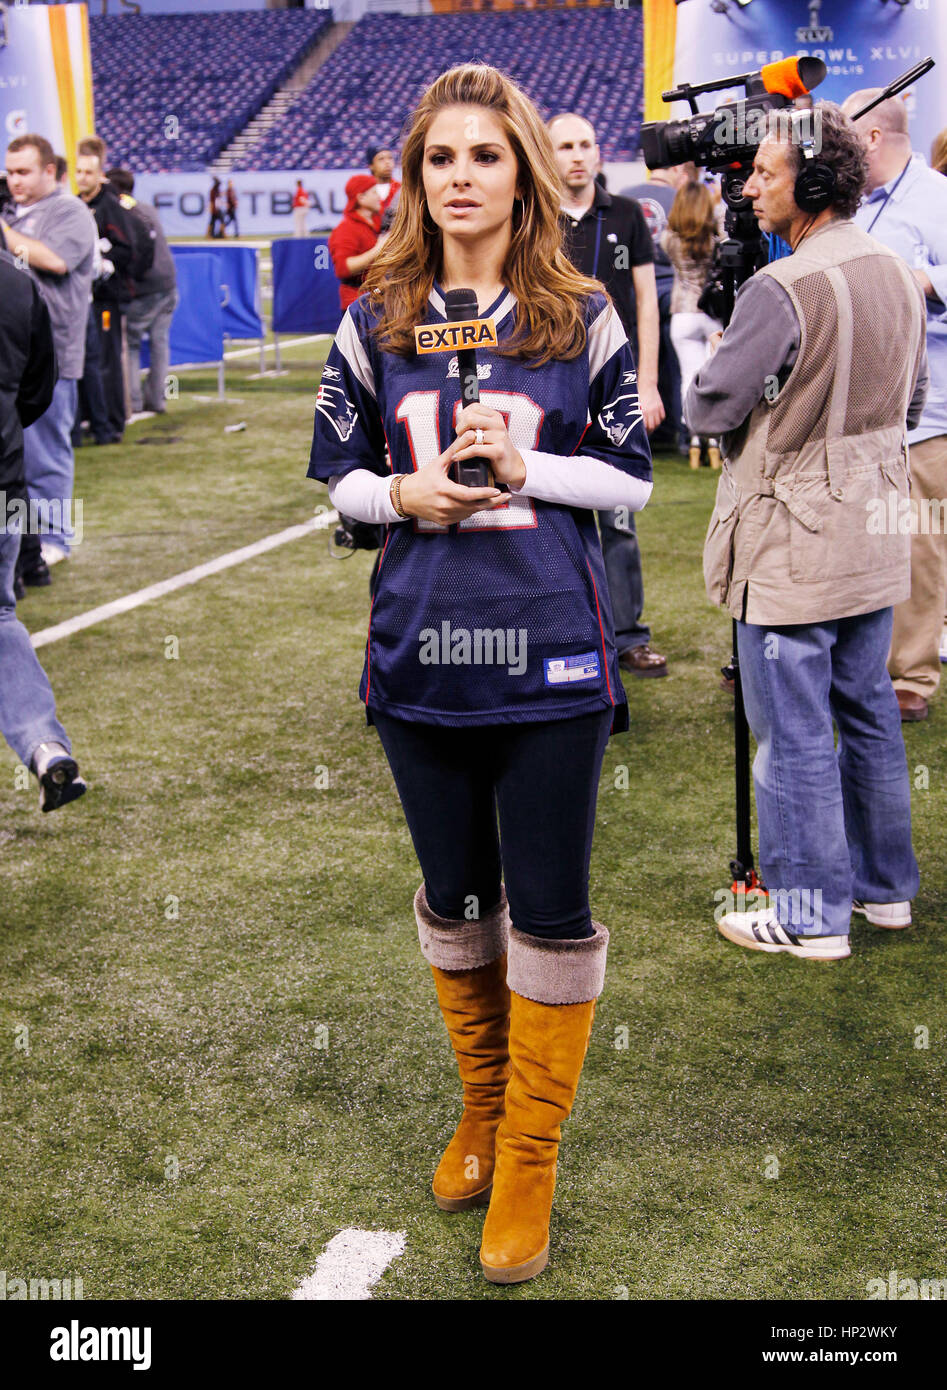 reputable site 75b77 12514 Maria Menounos wears her New England Patriots jersey at the ...